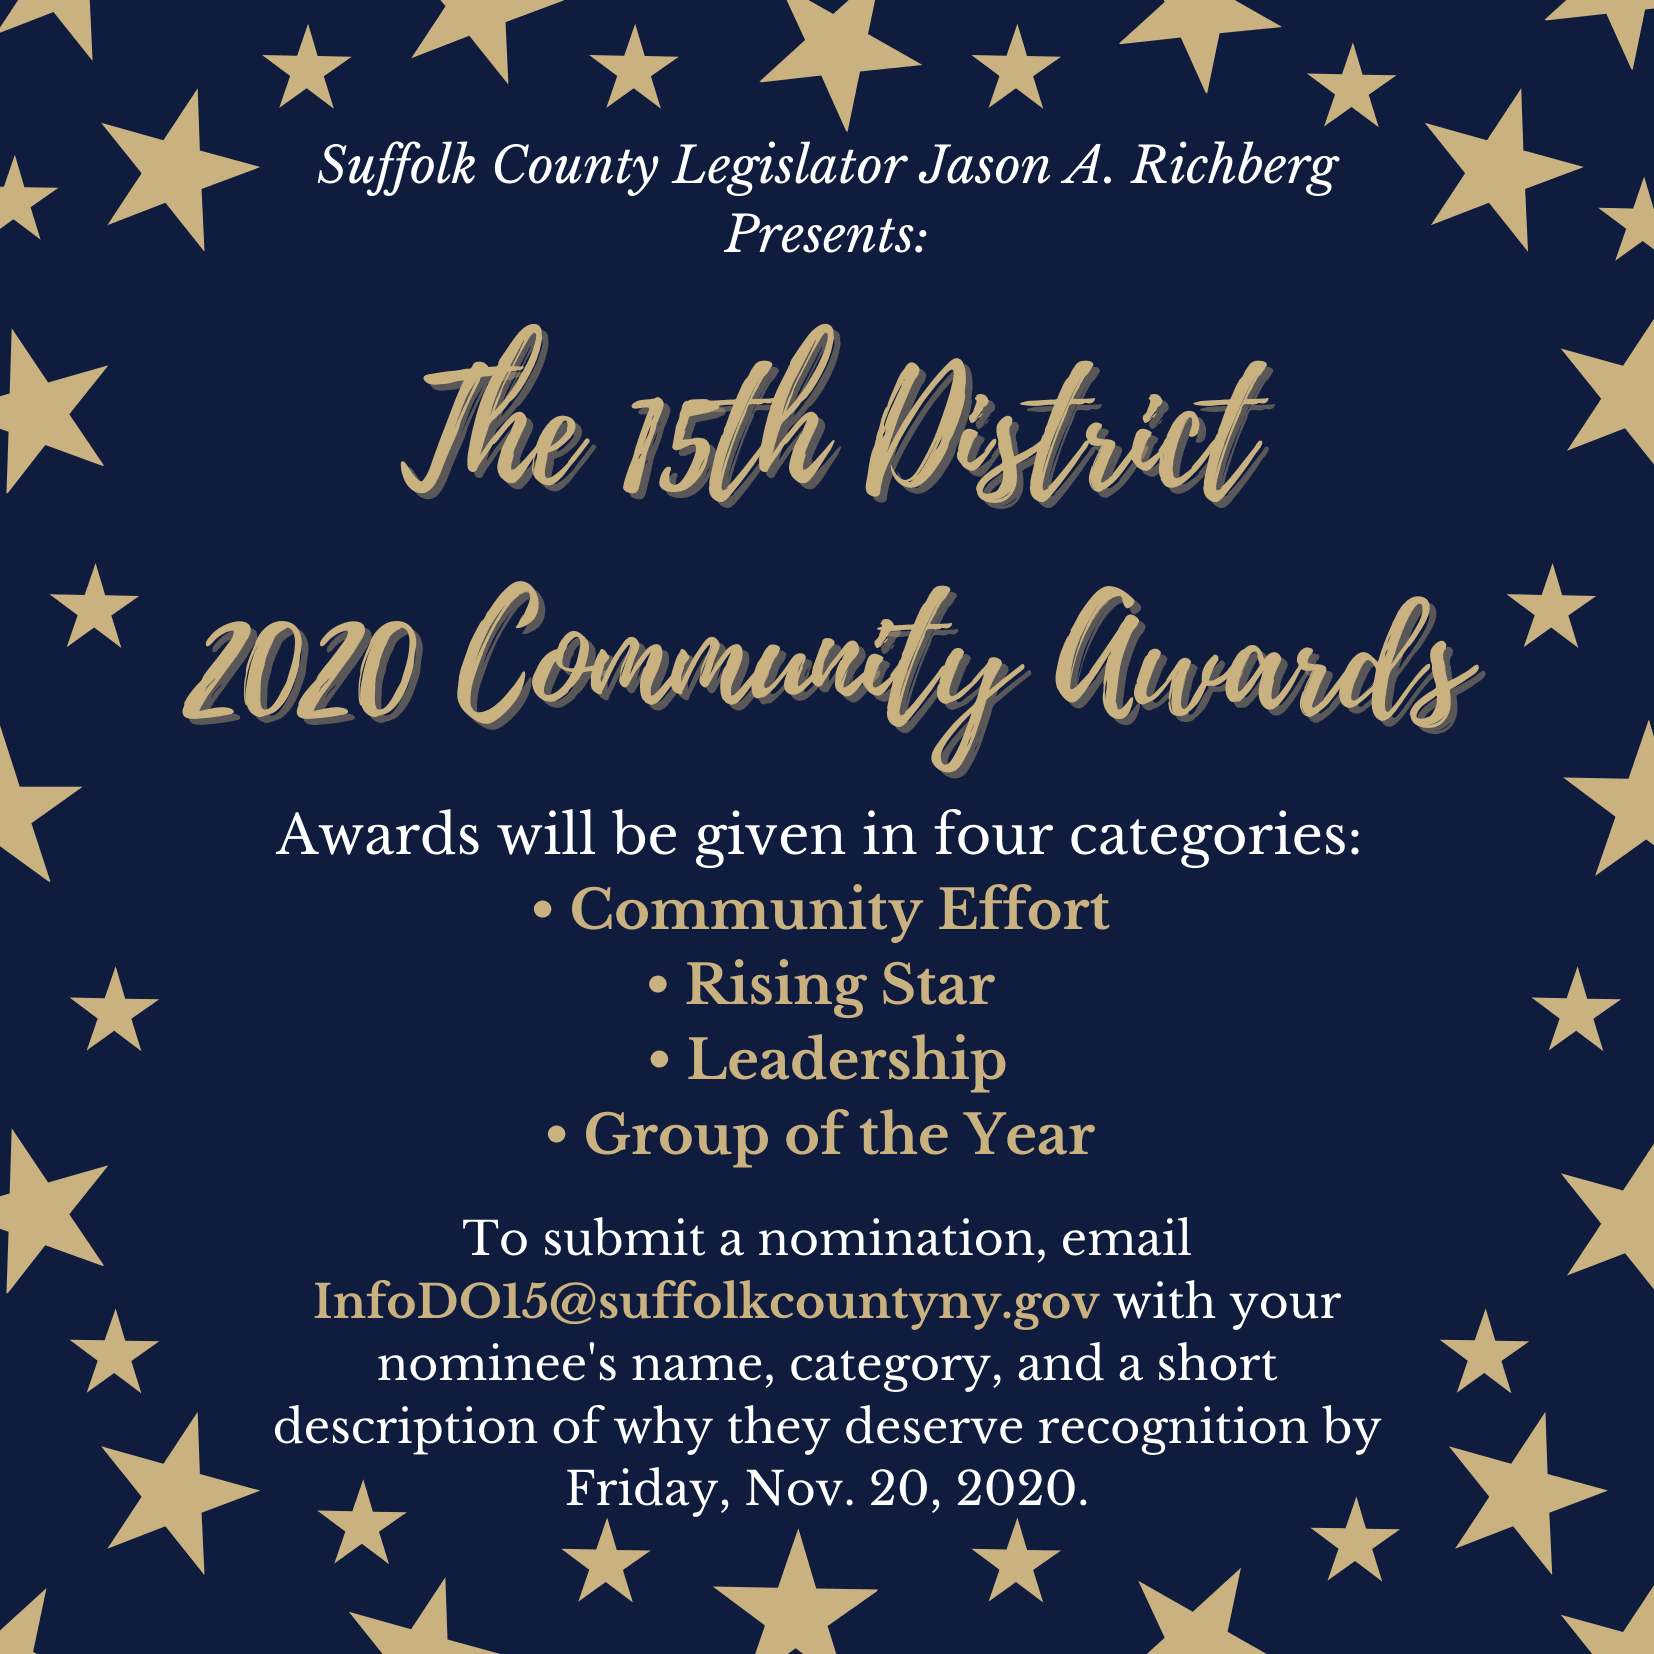 Legislator Richberg Presents: The 15th District 2020 Community Awards